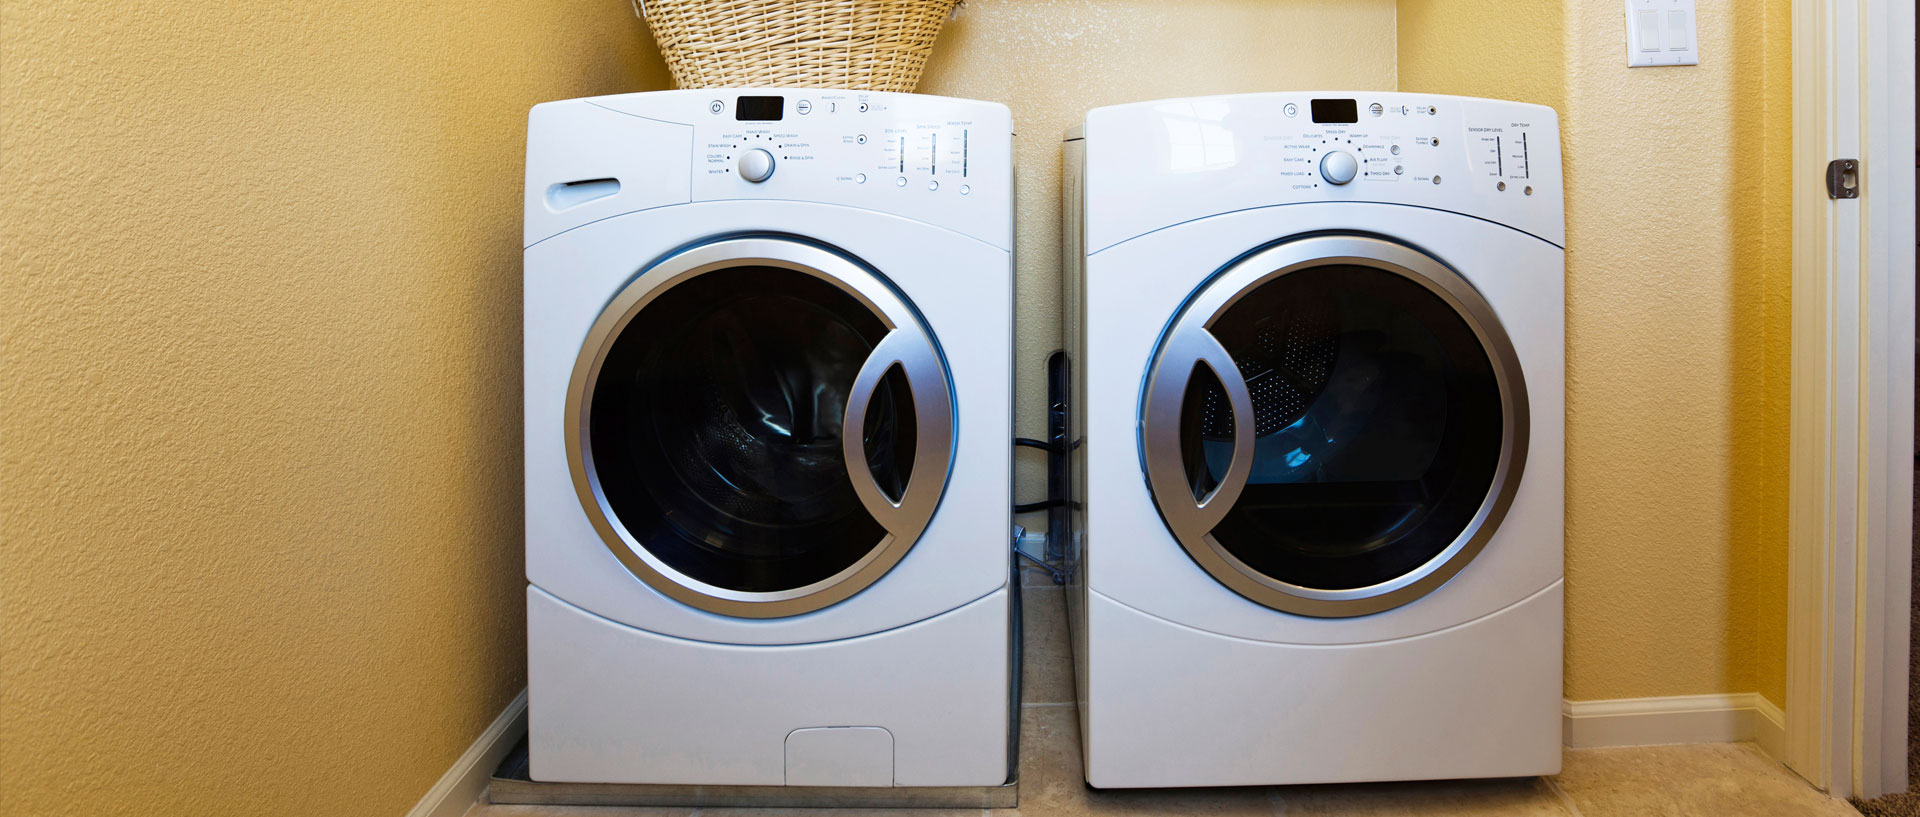 Washing Machines And Dryers ~ Washer and dryer sets that match your budget consumer